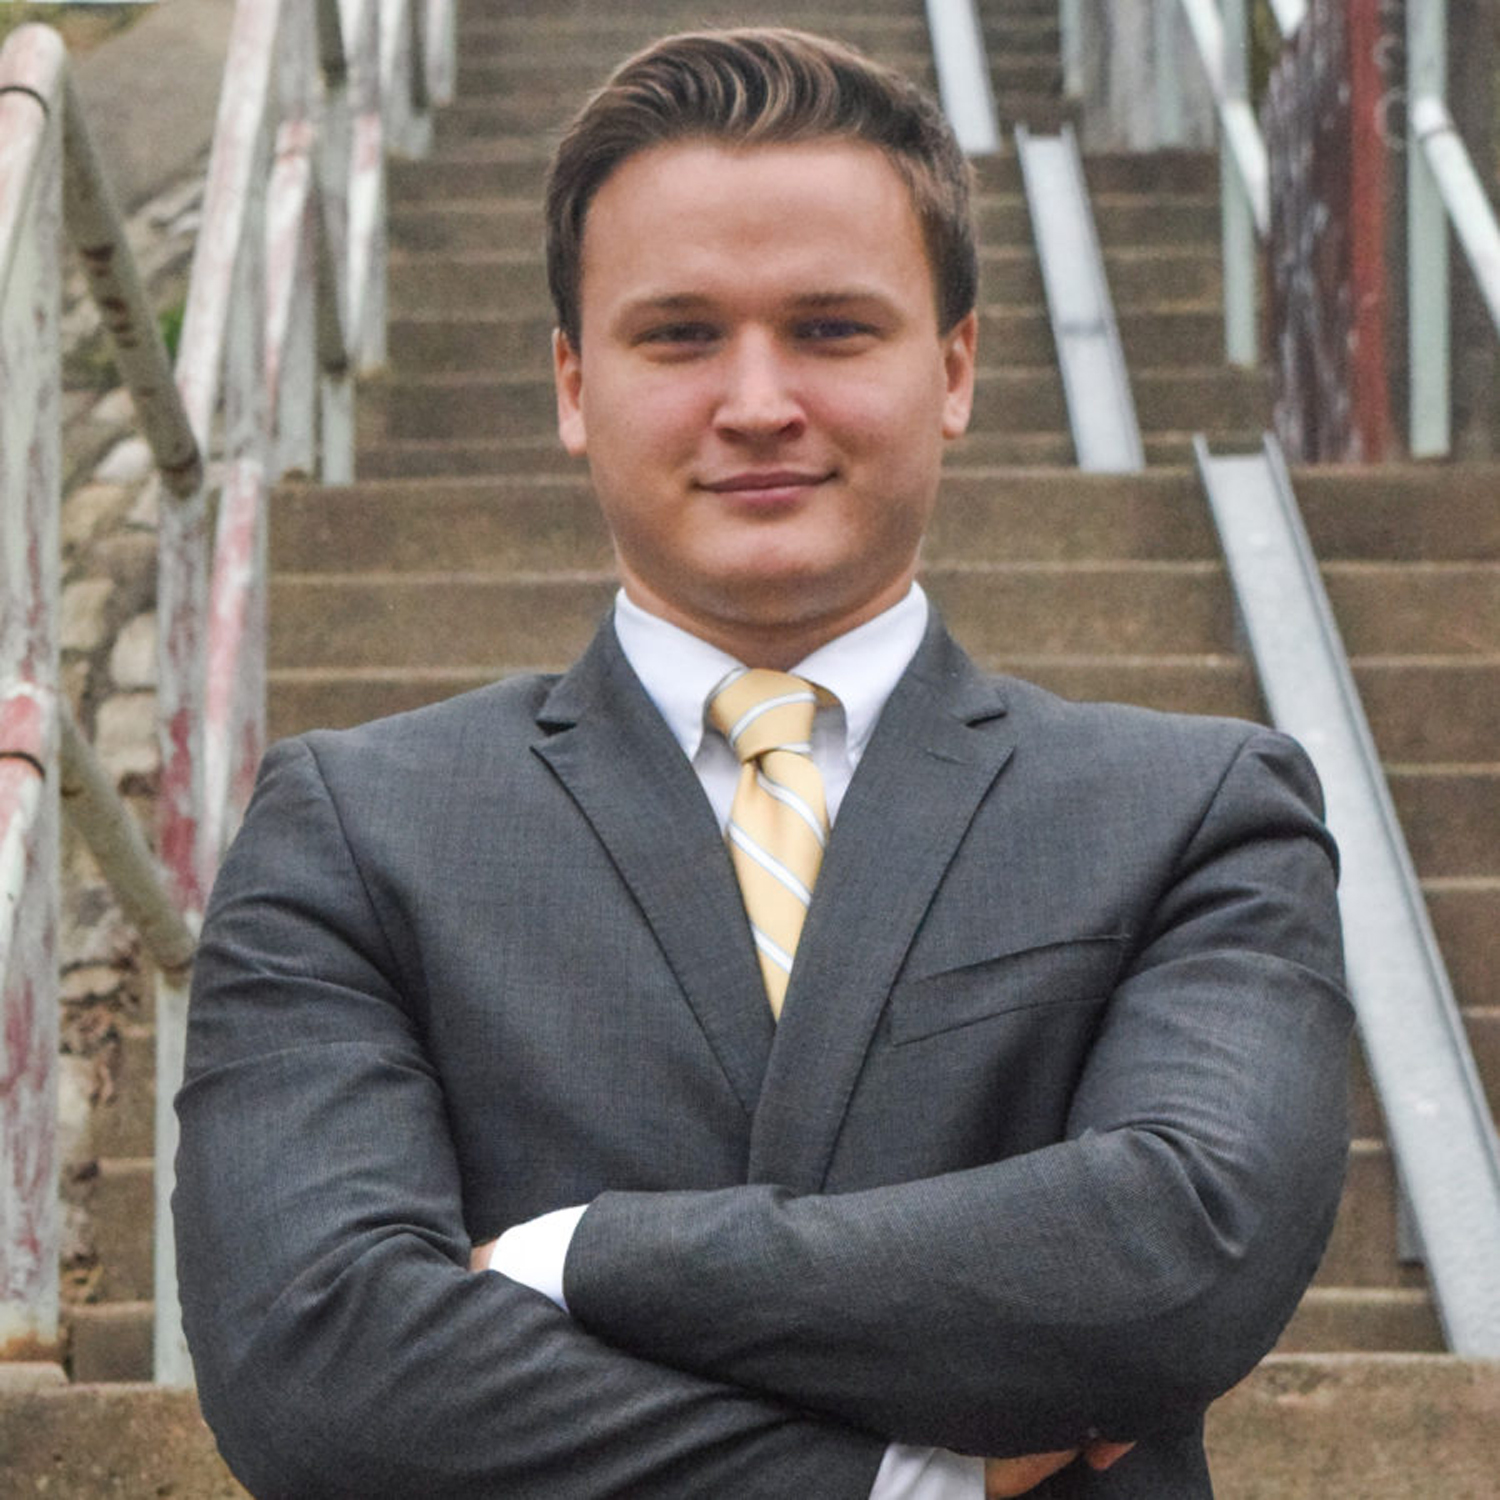 Pitt student Chris Kumanchik will appear on the democratic primary ballot for the District 3 seat on Pittsburgh City Council after being cleared from challenges on the validity of his petition for candidacy.